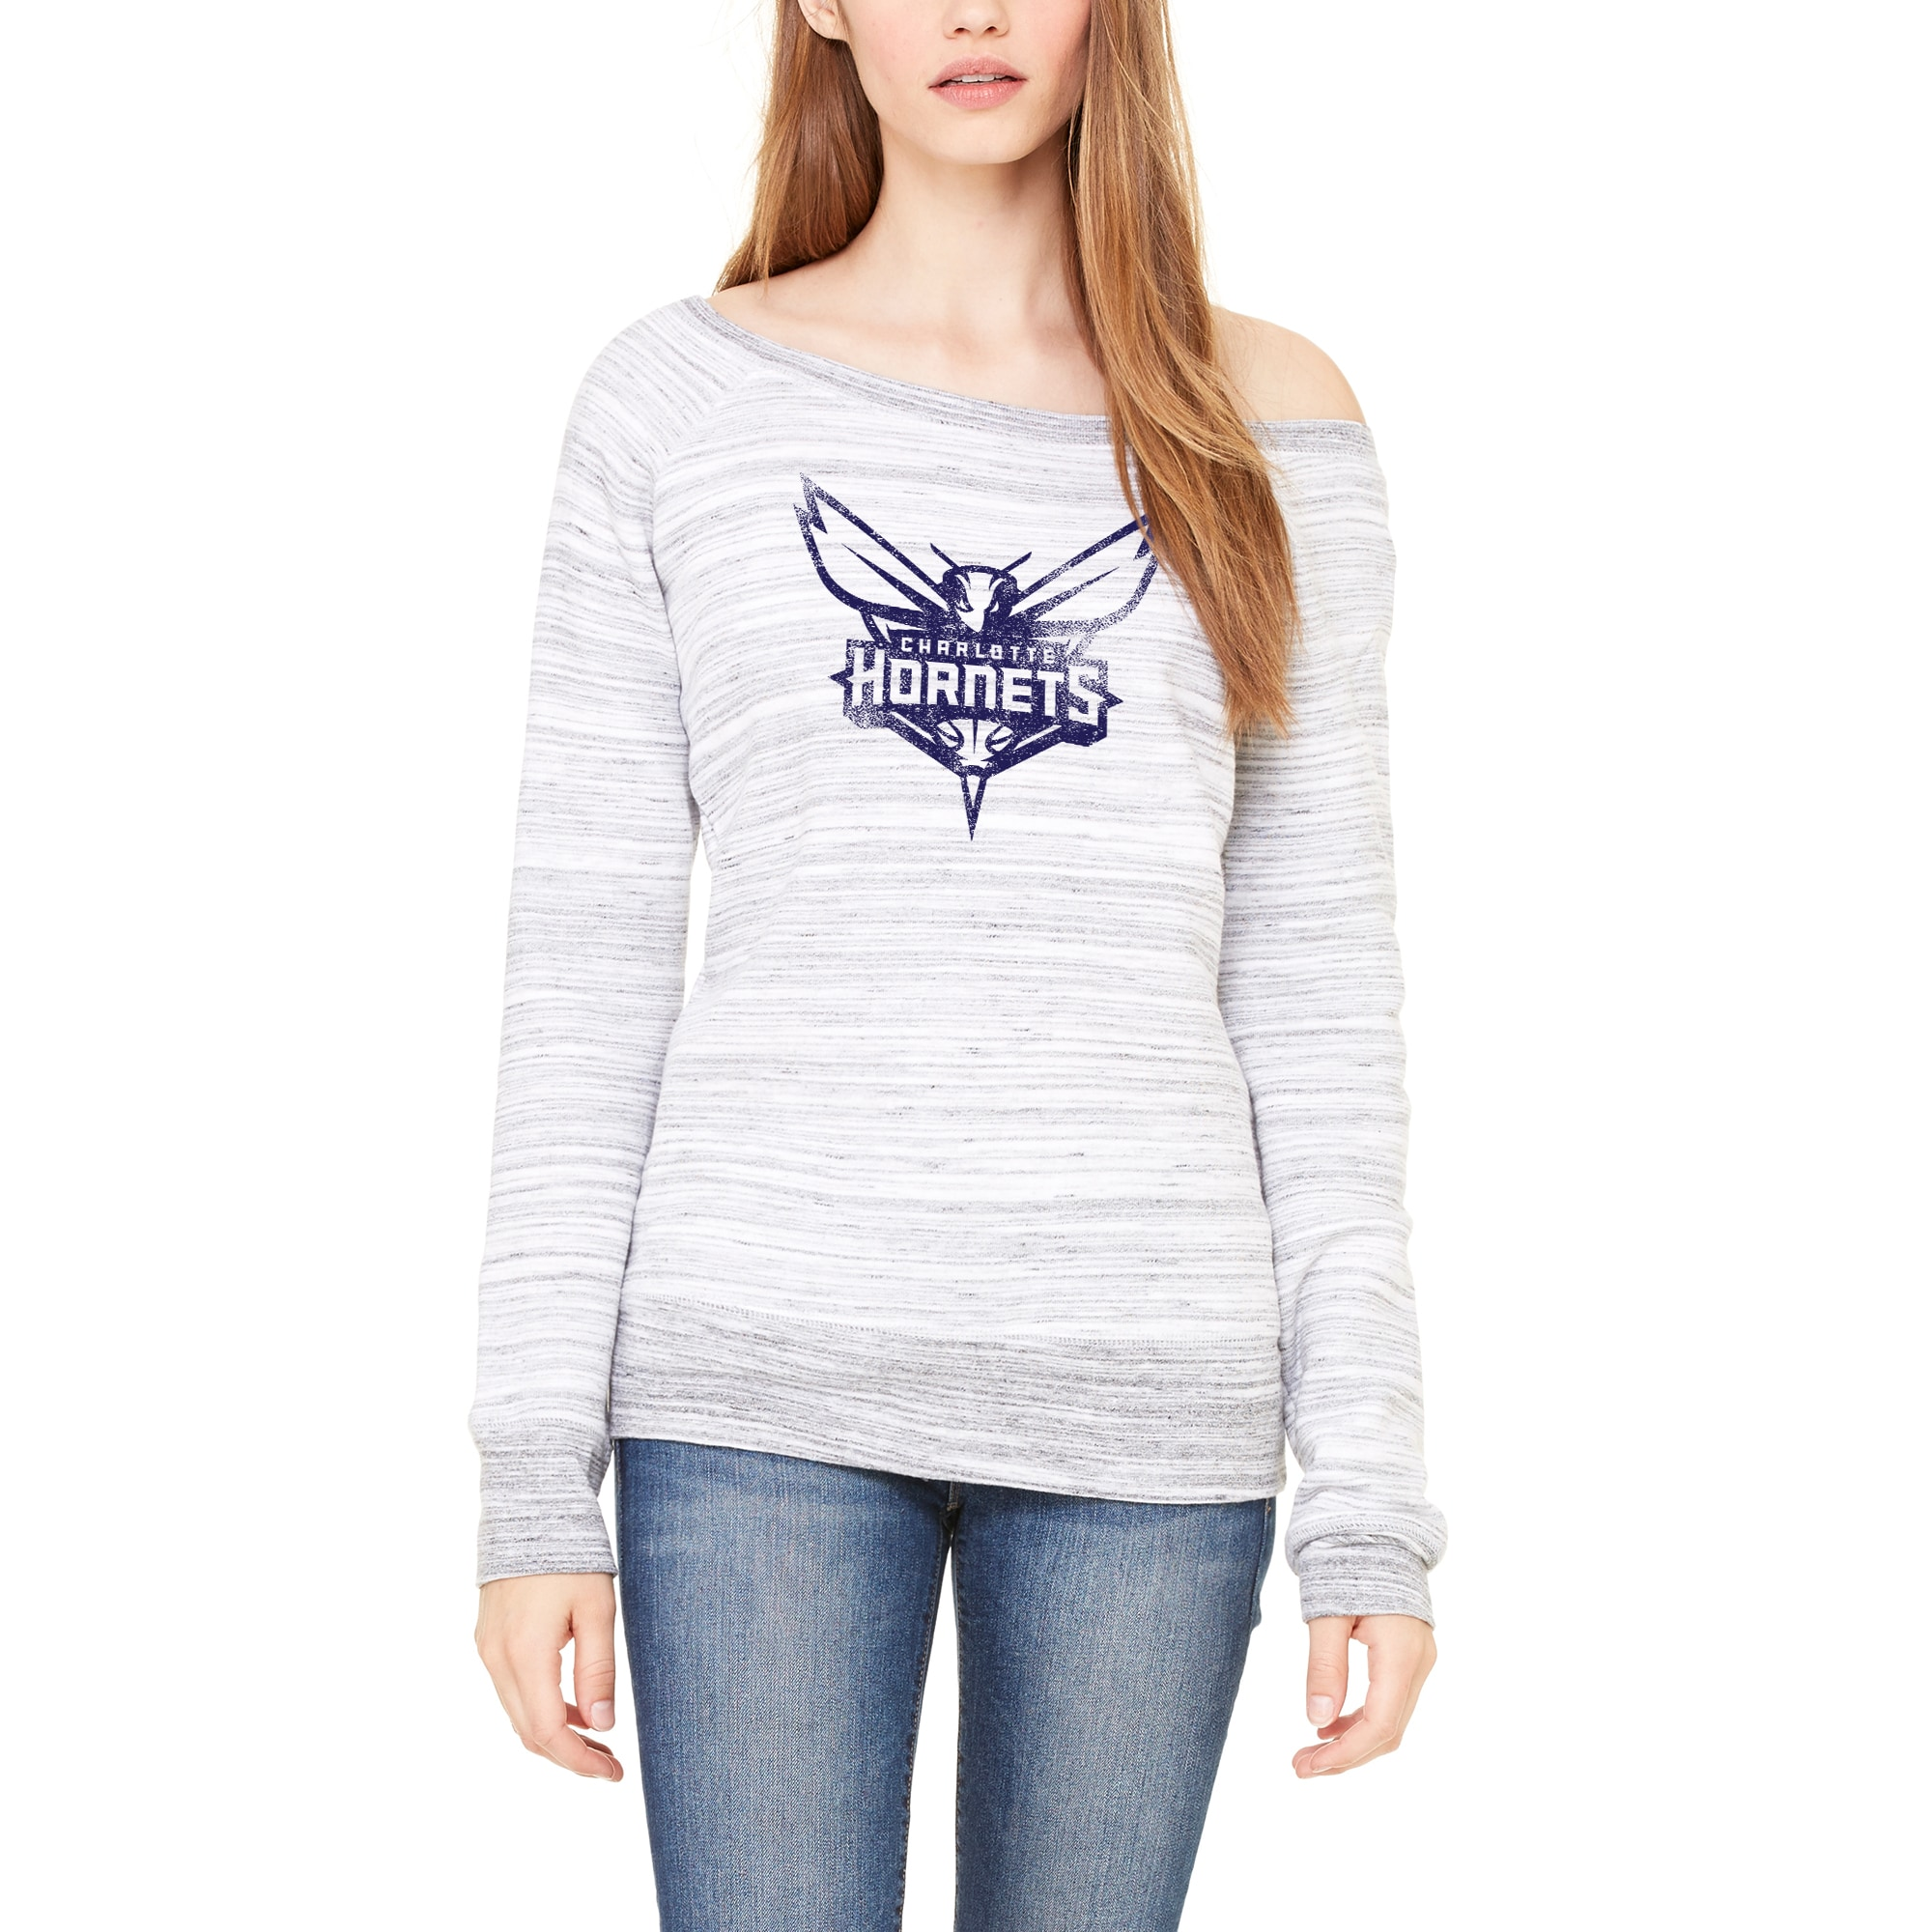 Charlotte Hornets Let Loose by RNL Women's Game Day Wide Neck Sweatshirt - Ash